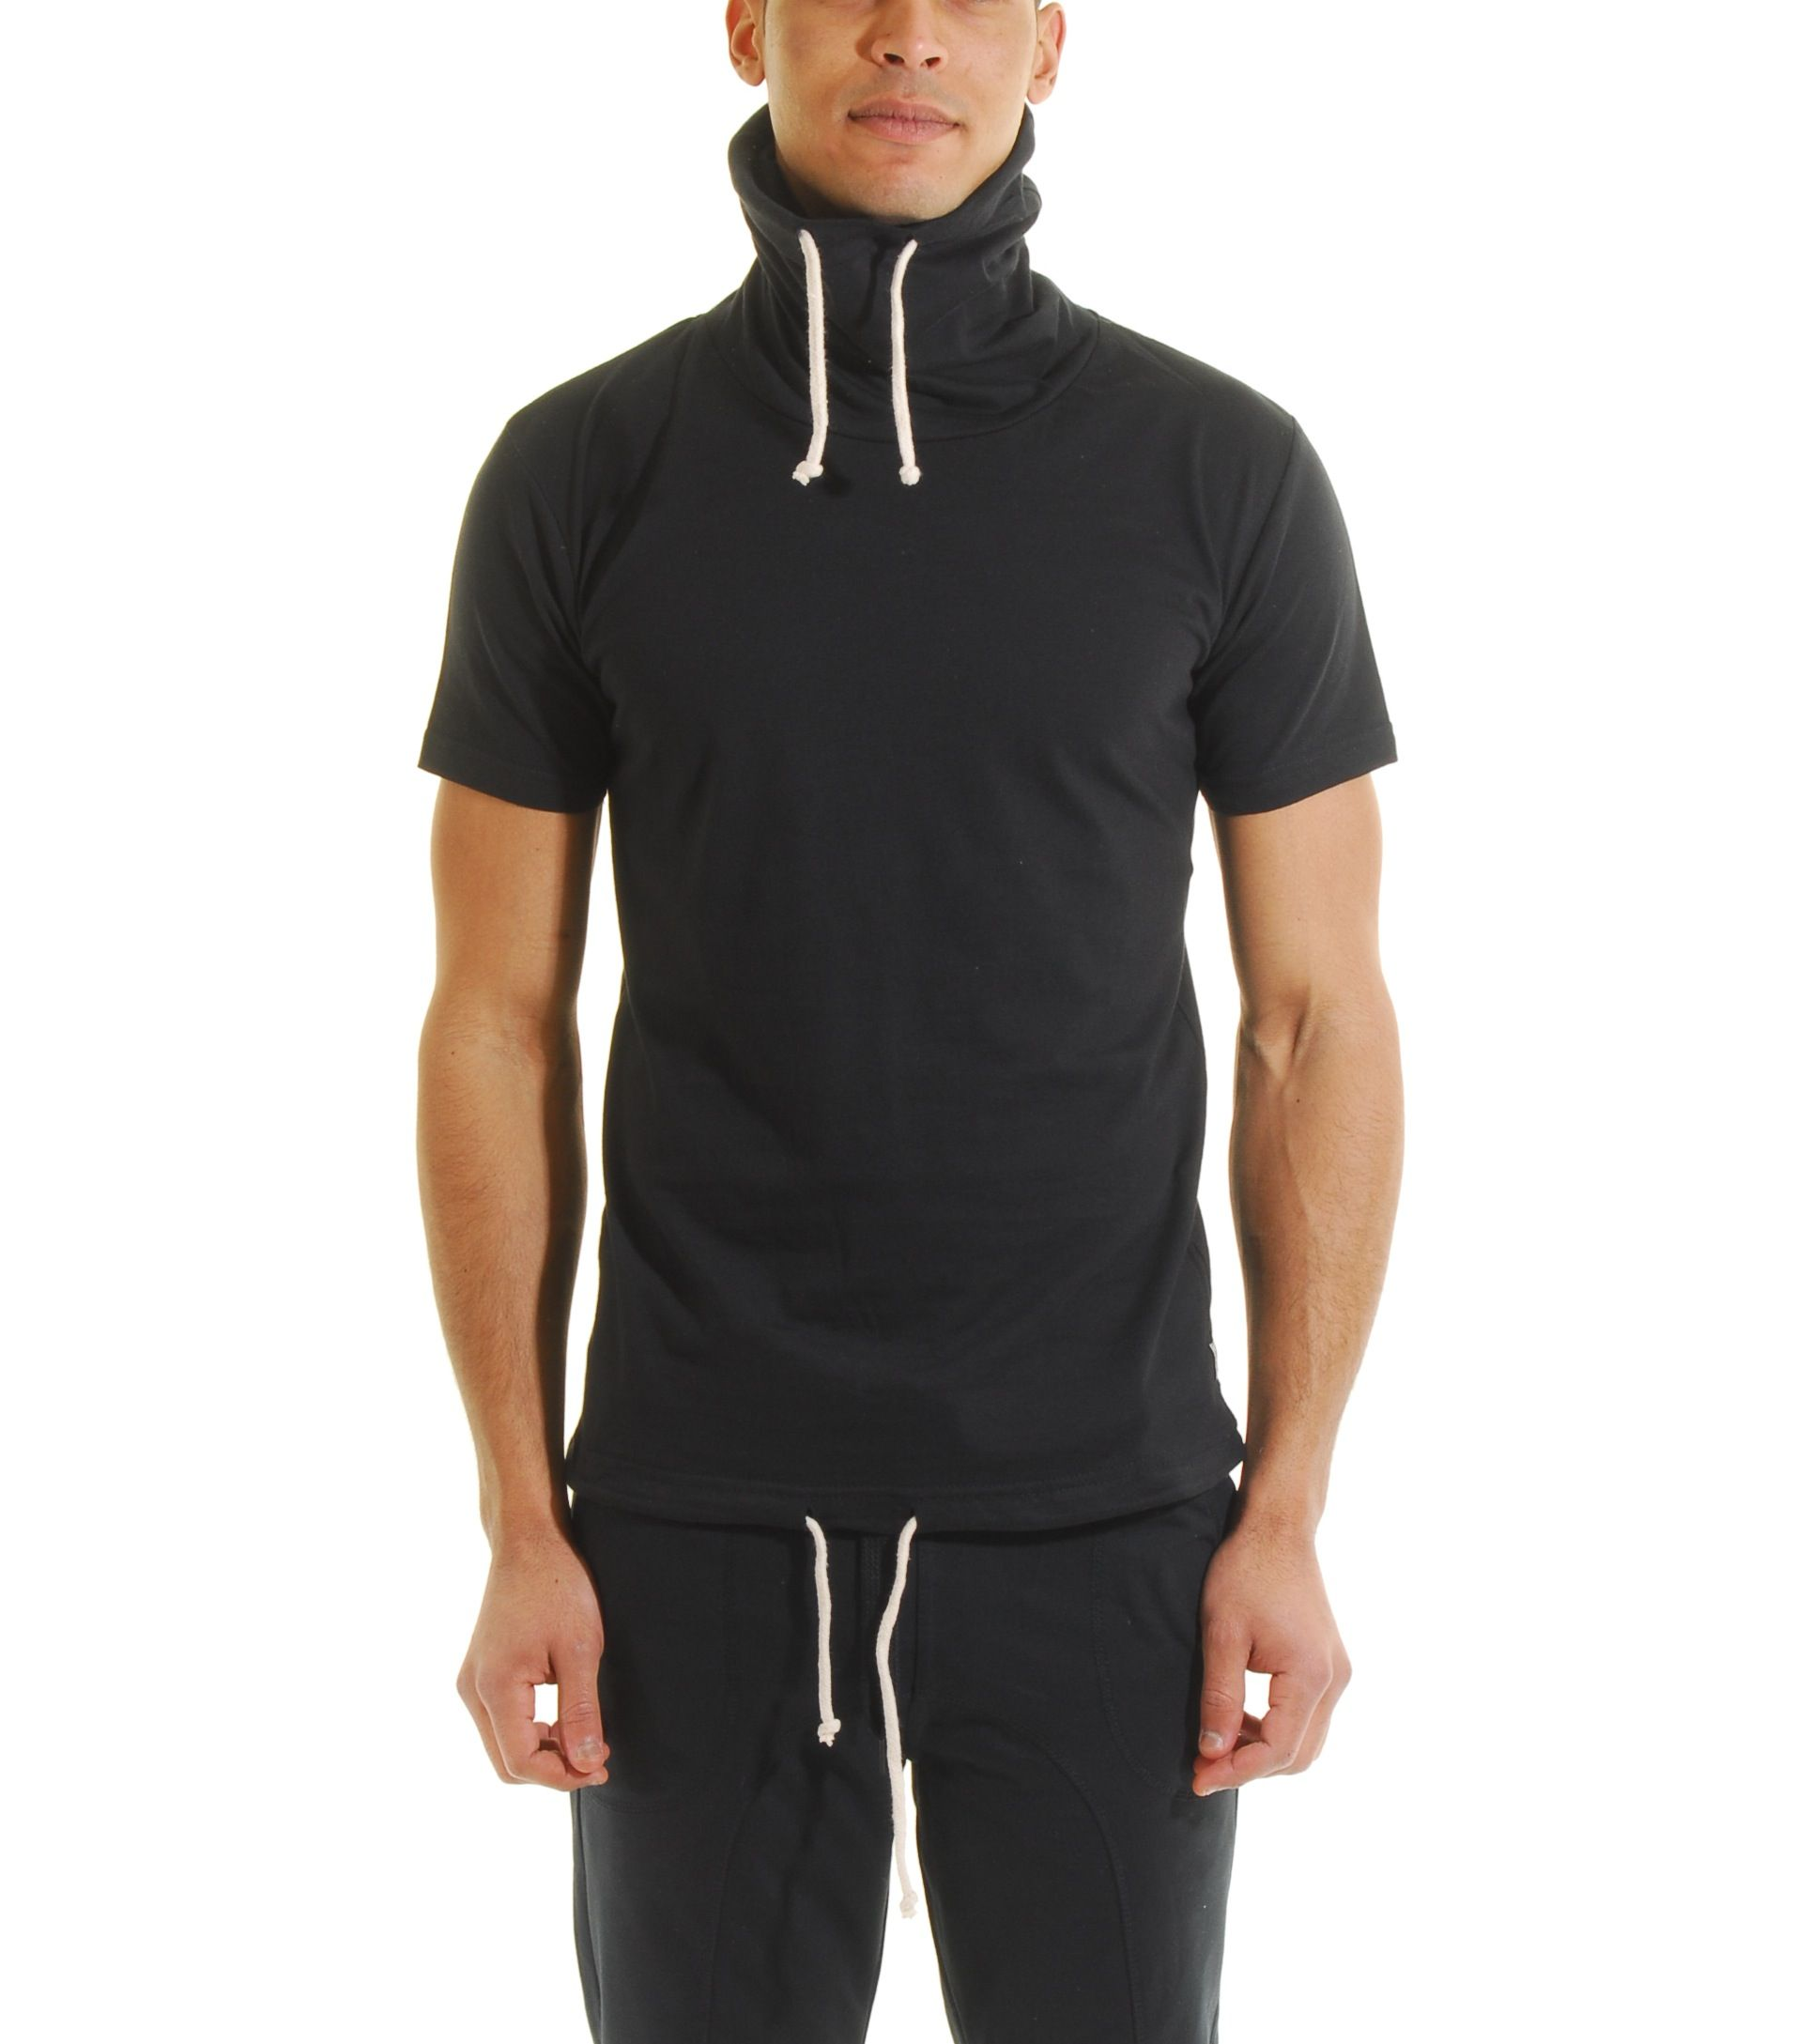 t shirt col roule delaveine modehomme tshirt mode homme col roul lookbook